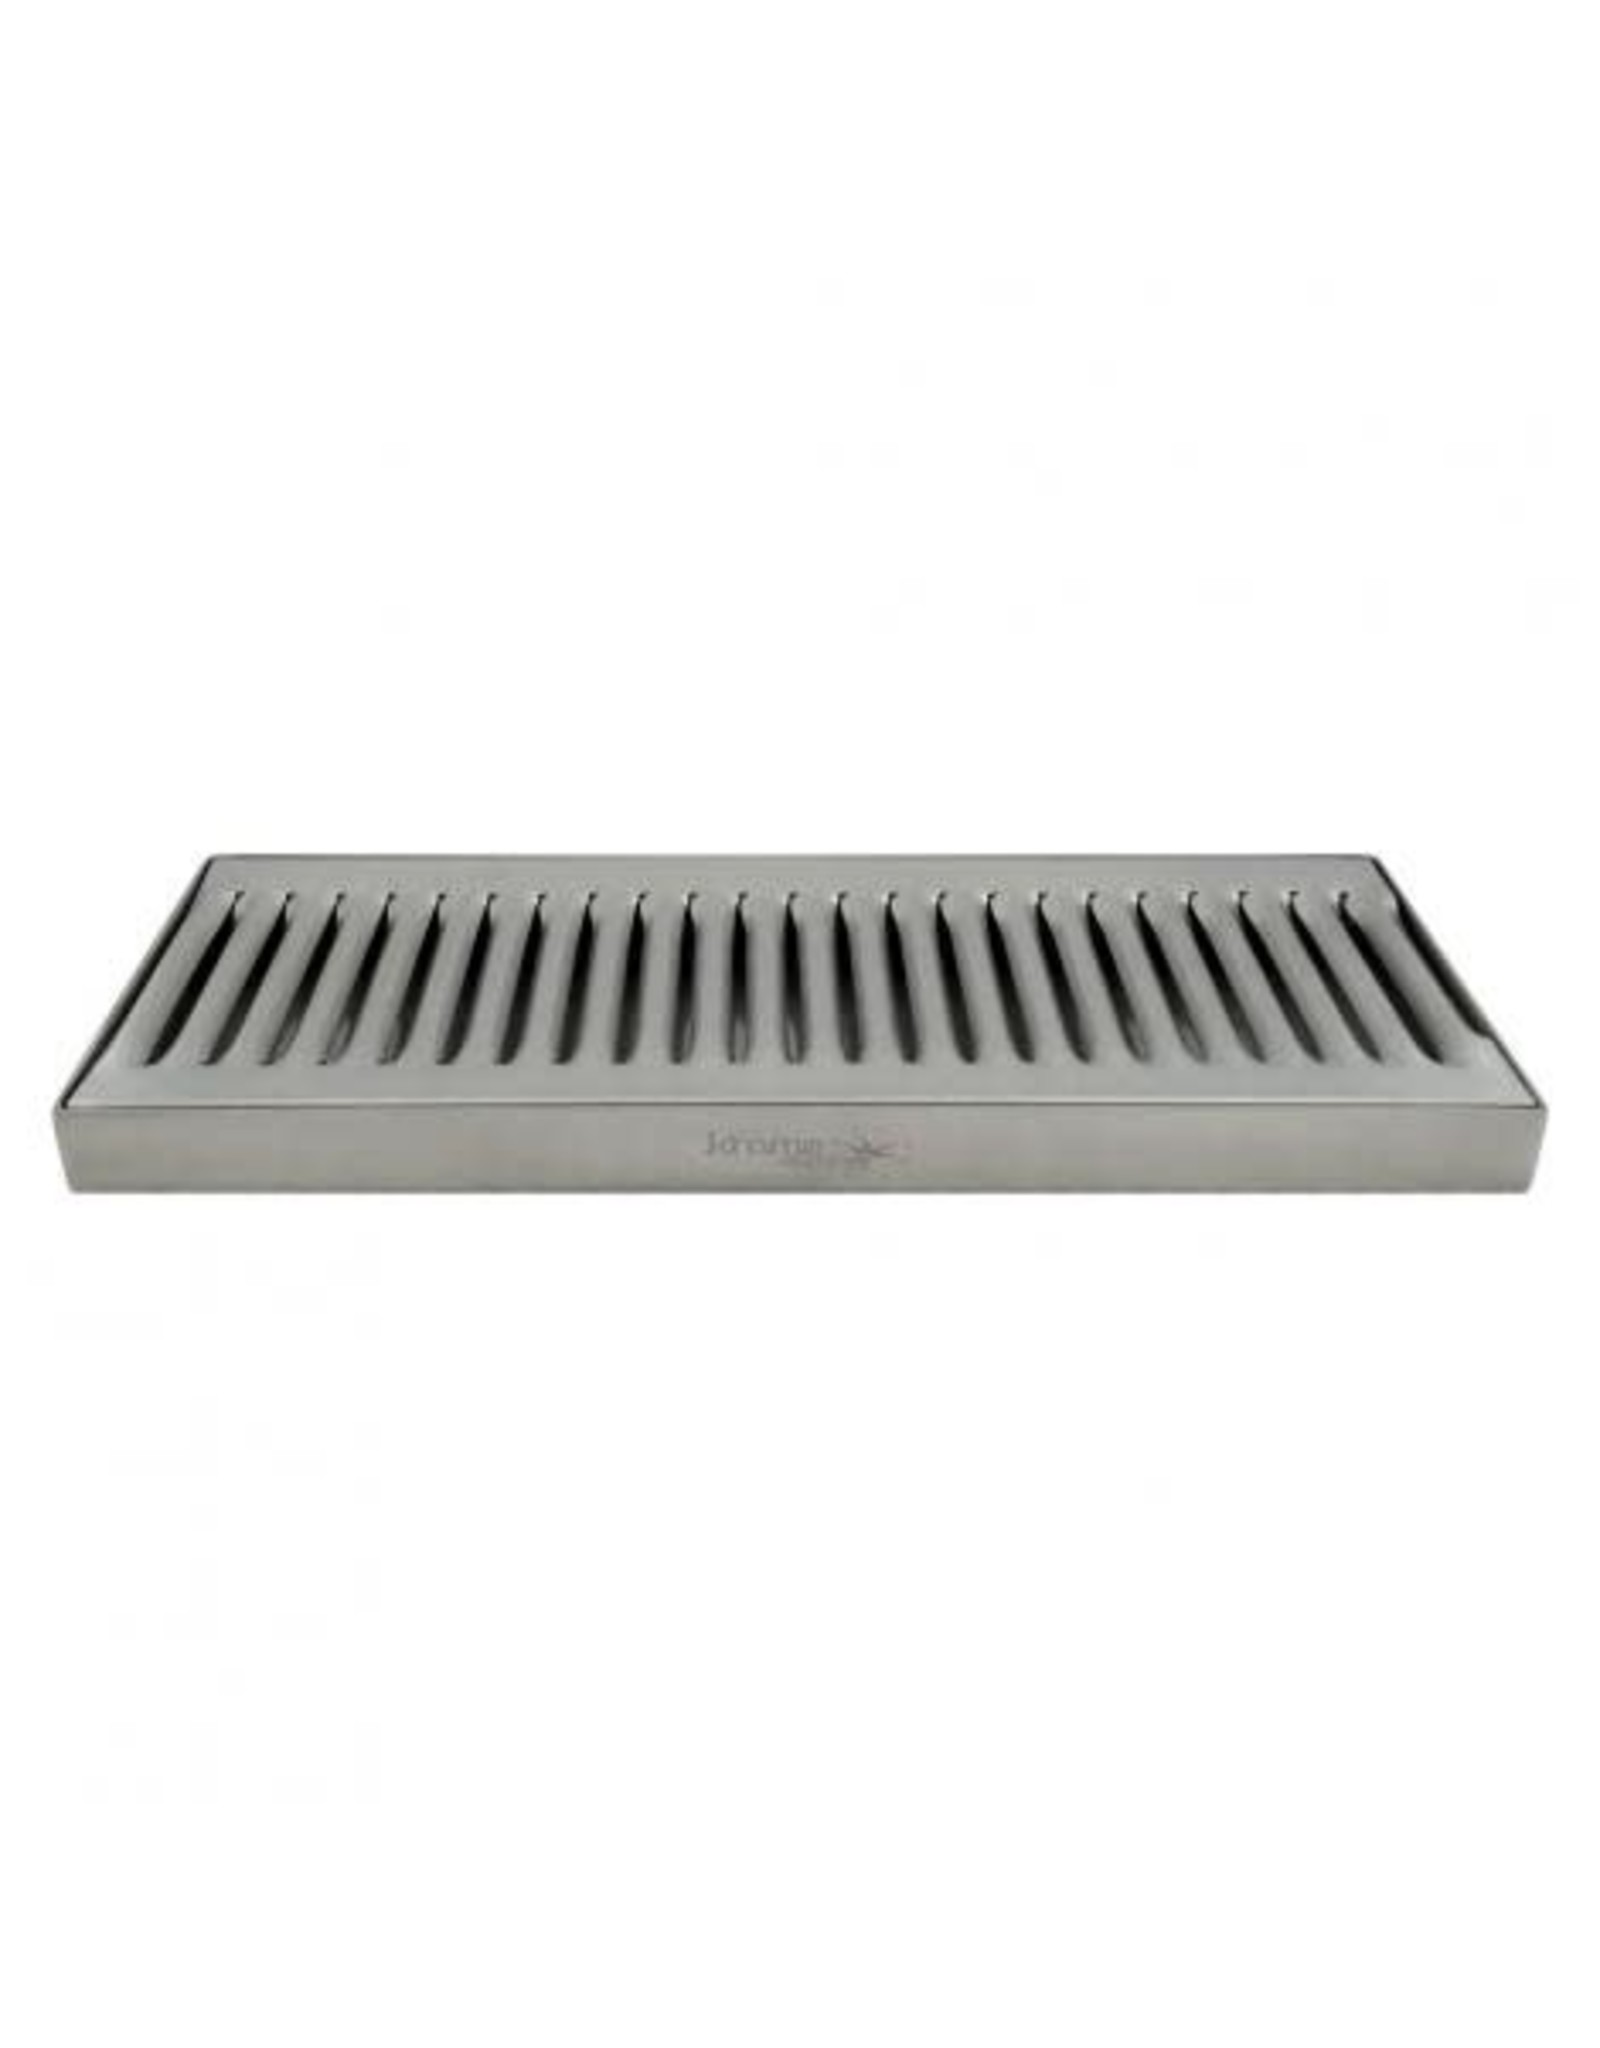 Foxx Equipment Drip Tray, Counter Mount (12 X 5)